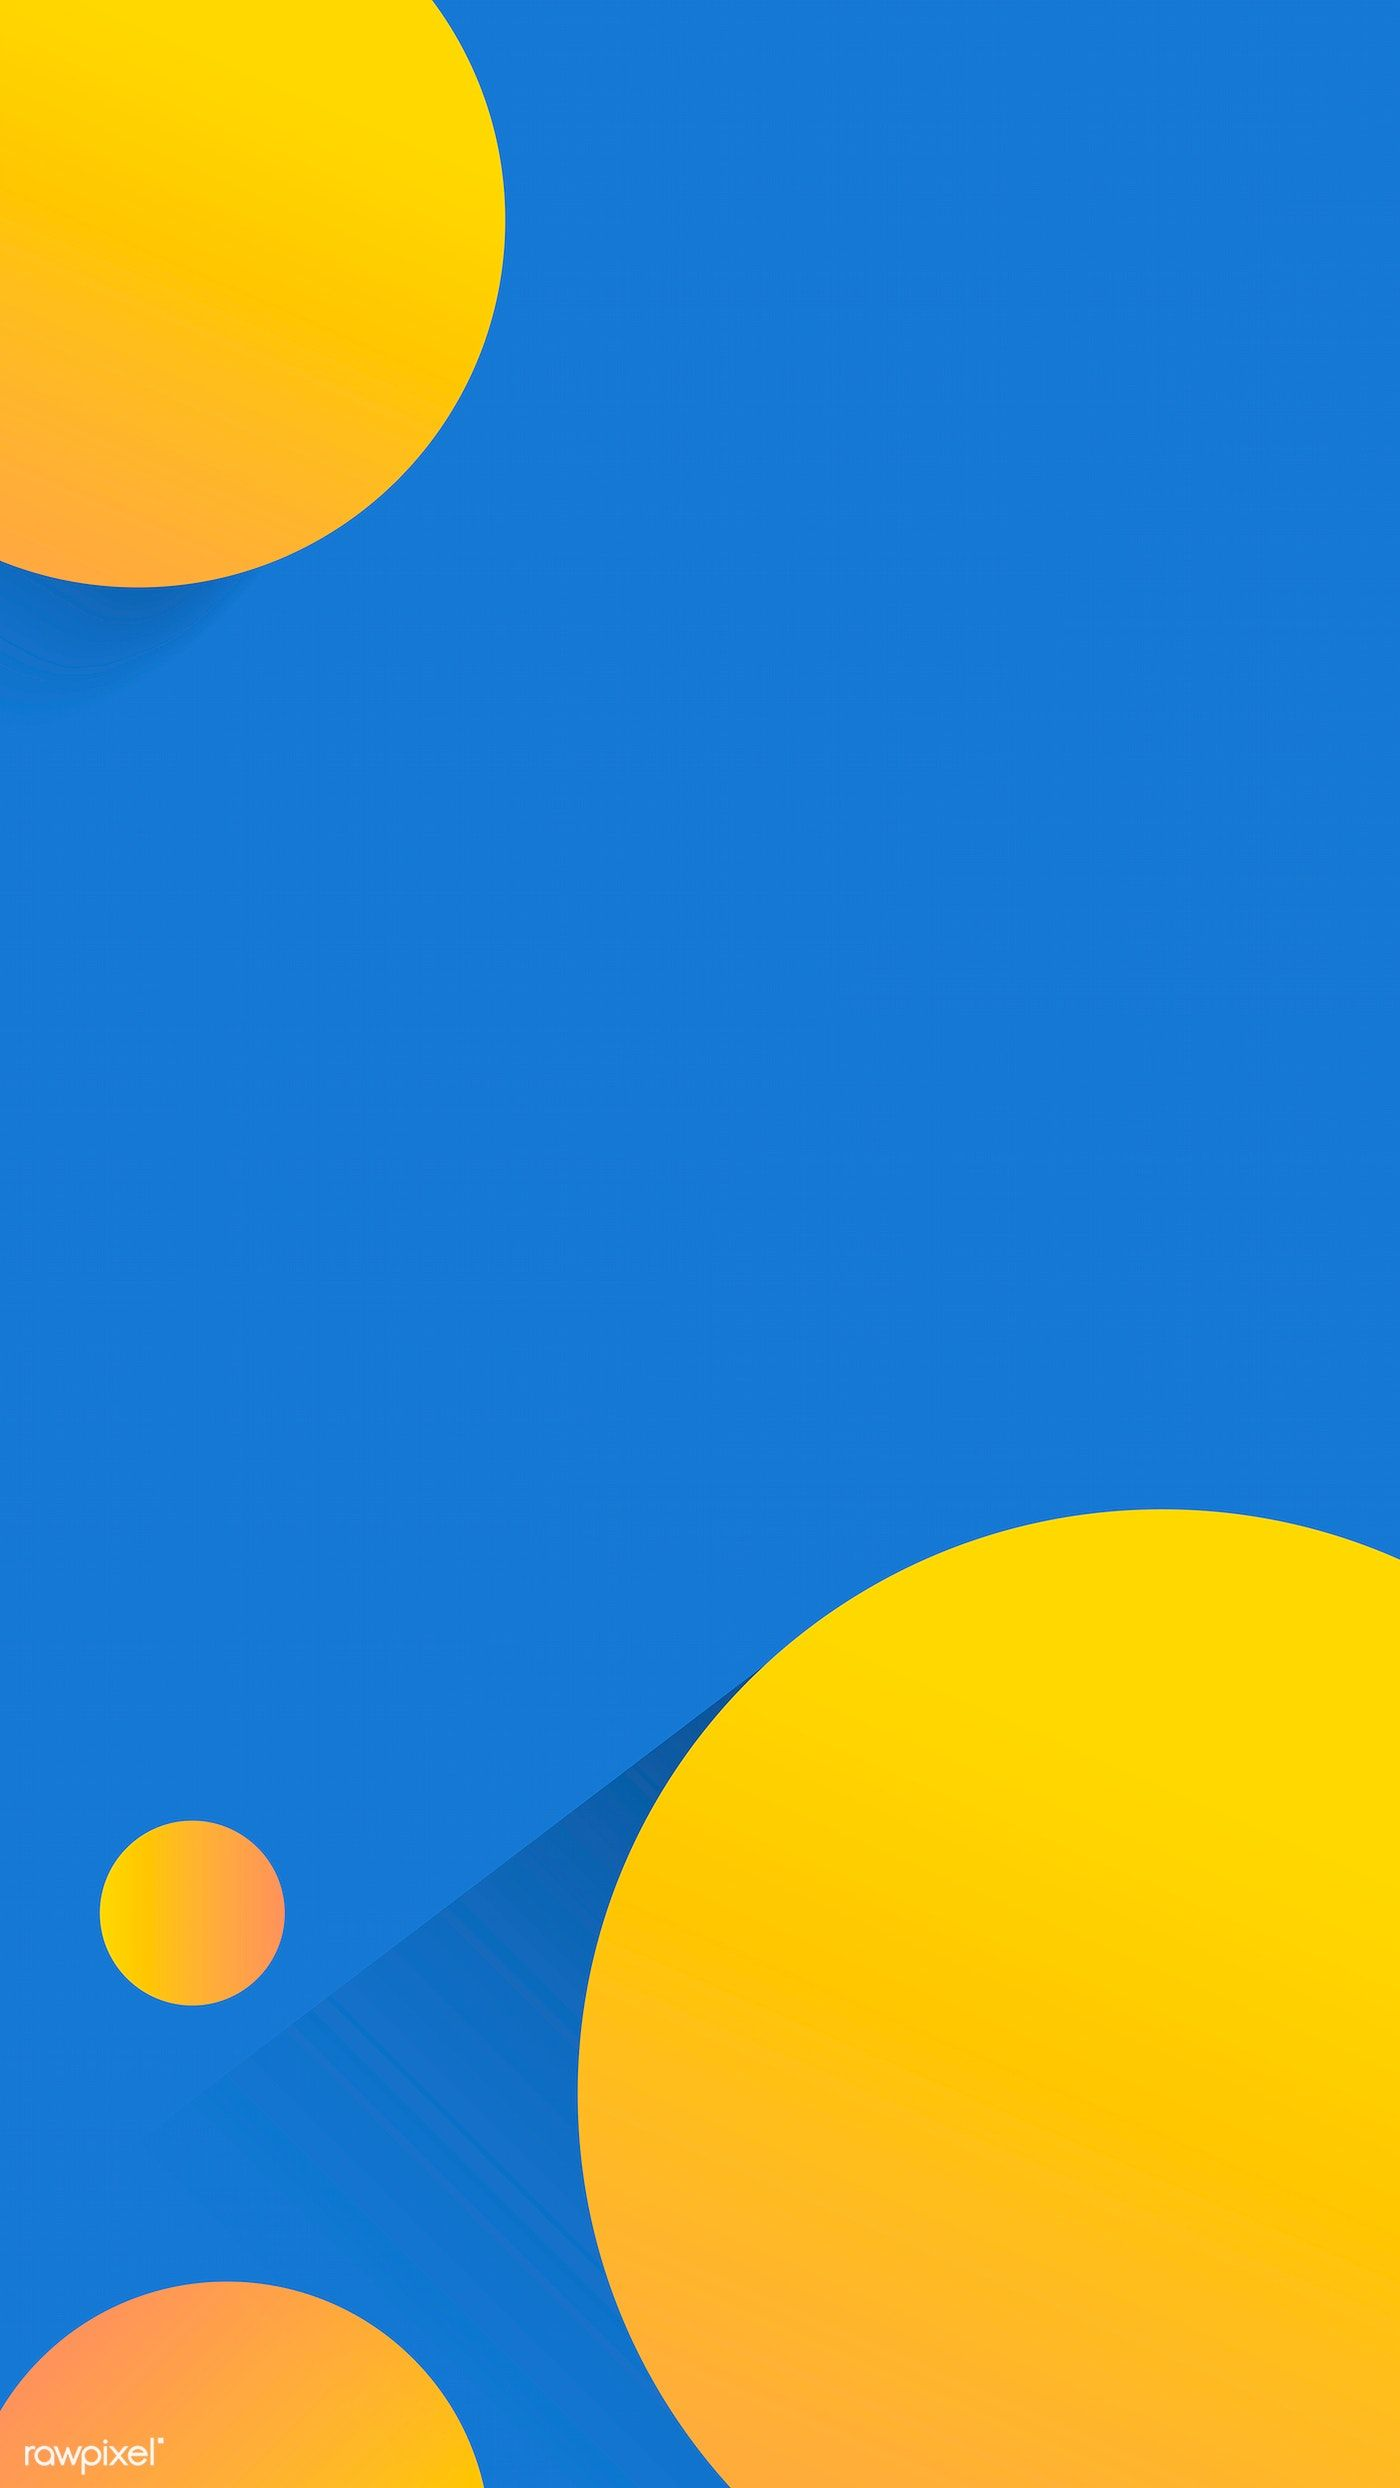 Round Yellow And Blue Abstract Background Vector Free Image By Rawpixel Com In 2020 Blue Abstract Abstract Backgrounds Blue Wallpaper Iphone